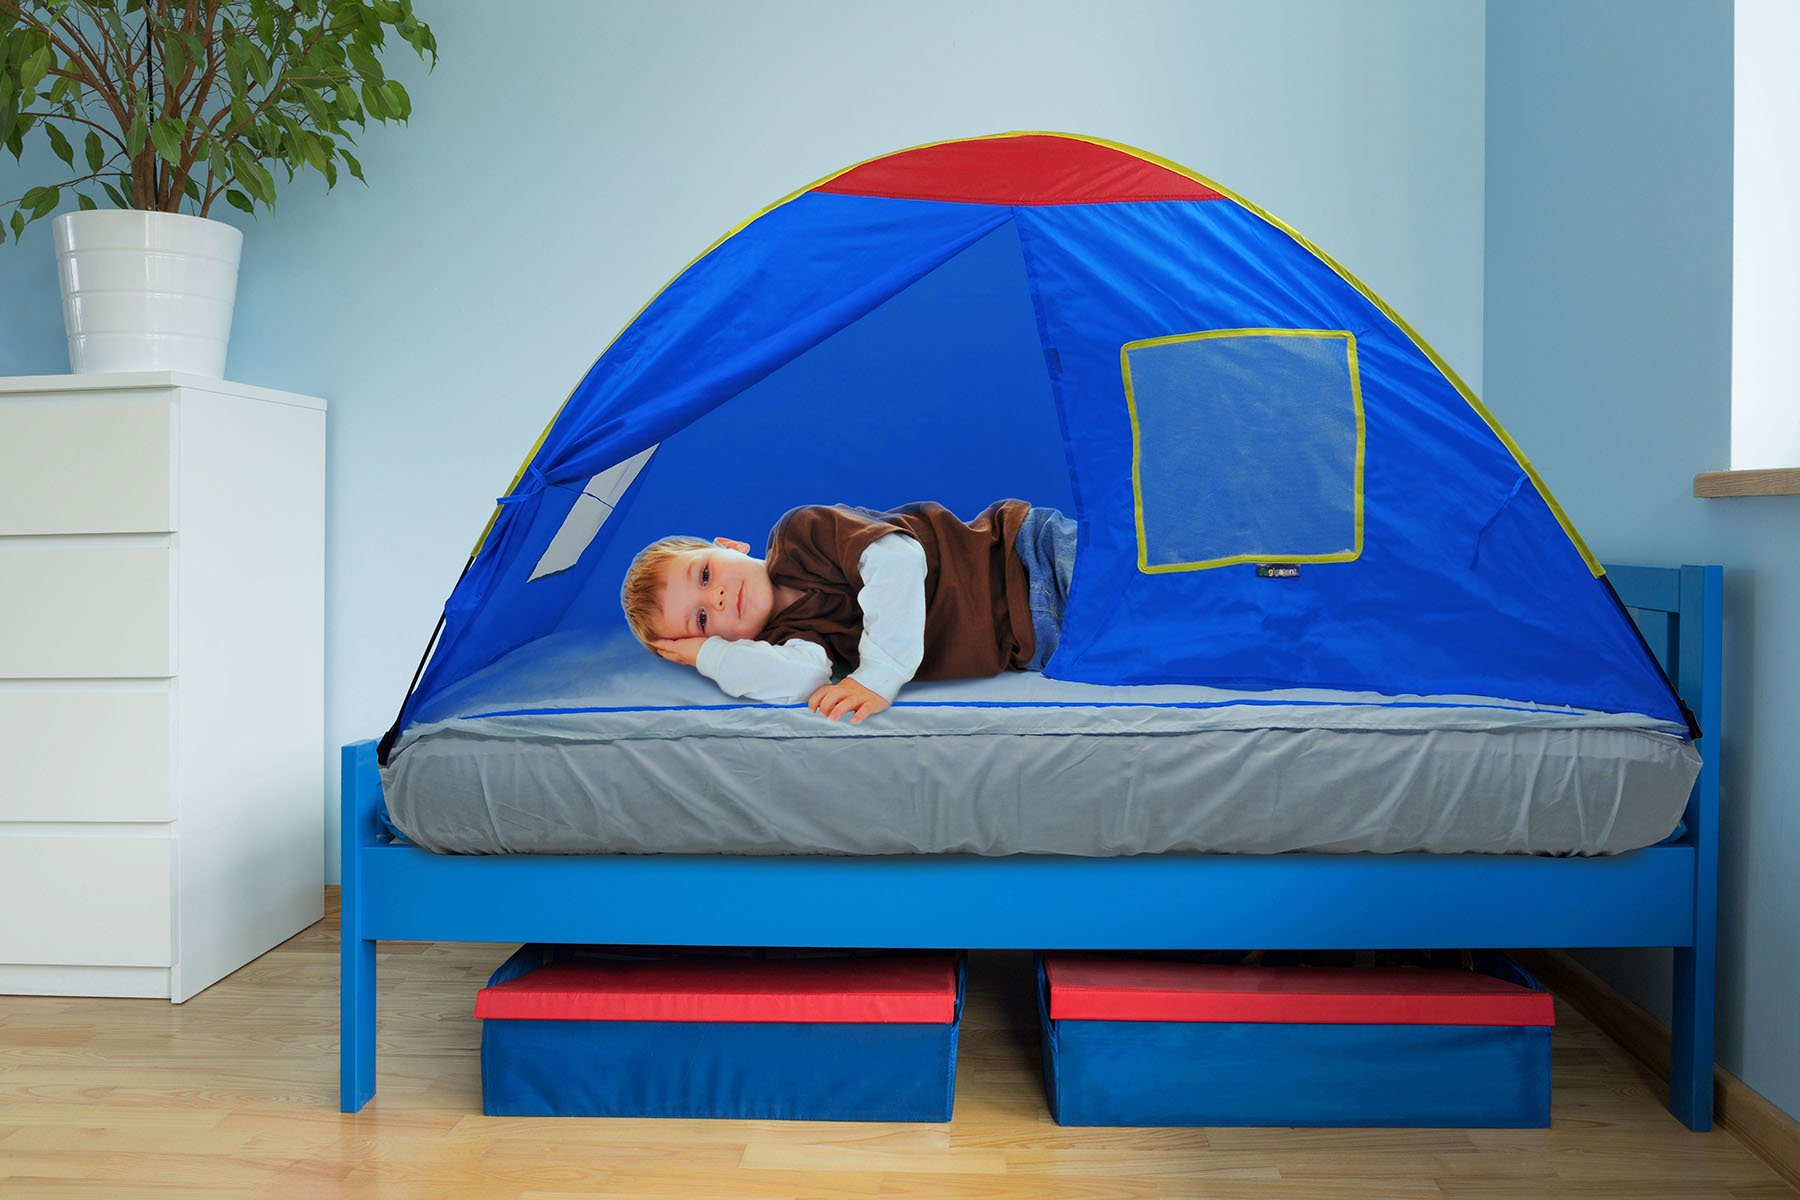 GigaTent Kids Blue Twin Sleep Tent u2013 Use On Top or Off Bed u2013 Easy Setup  sc 1 st  Amazon.com & Kids Bed Tents: Amazon.com